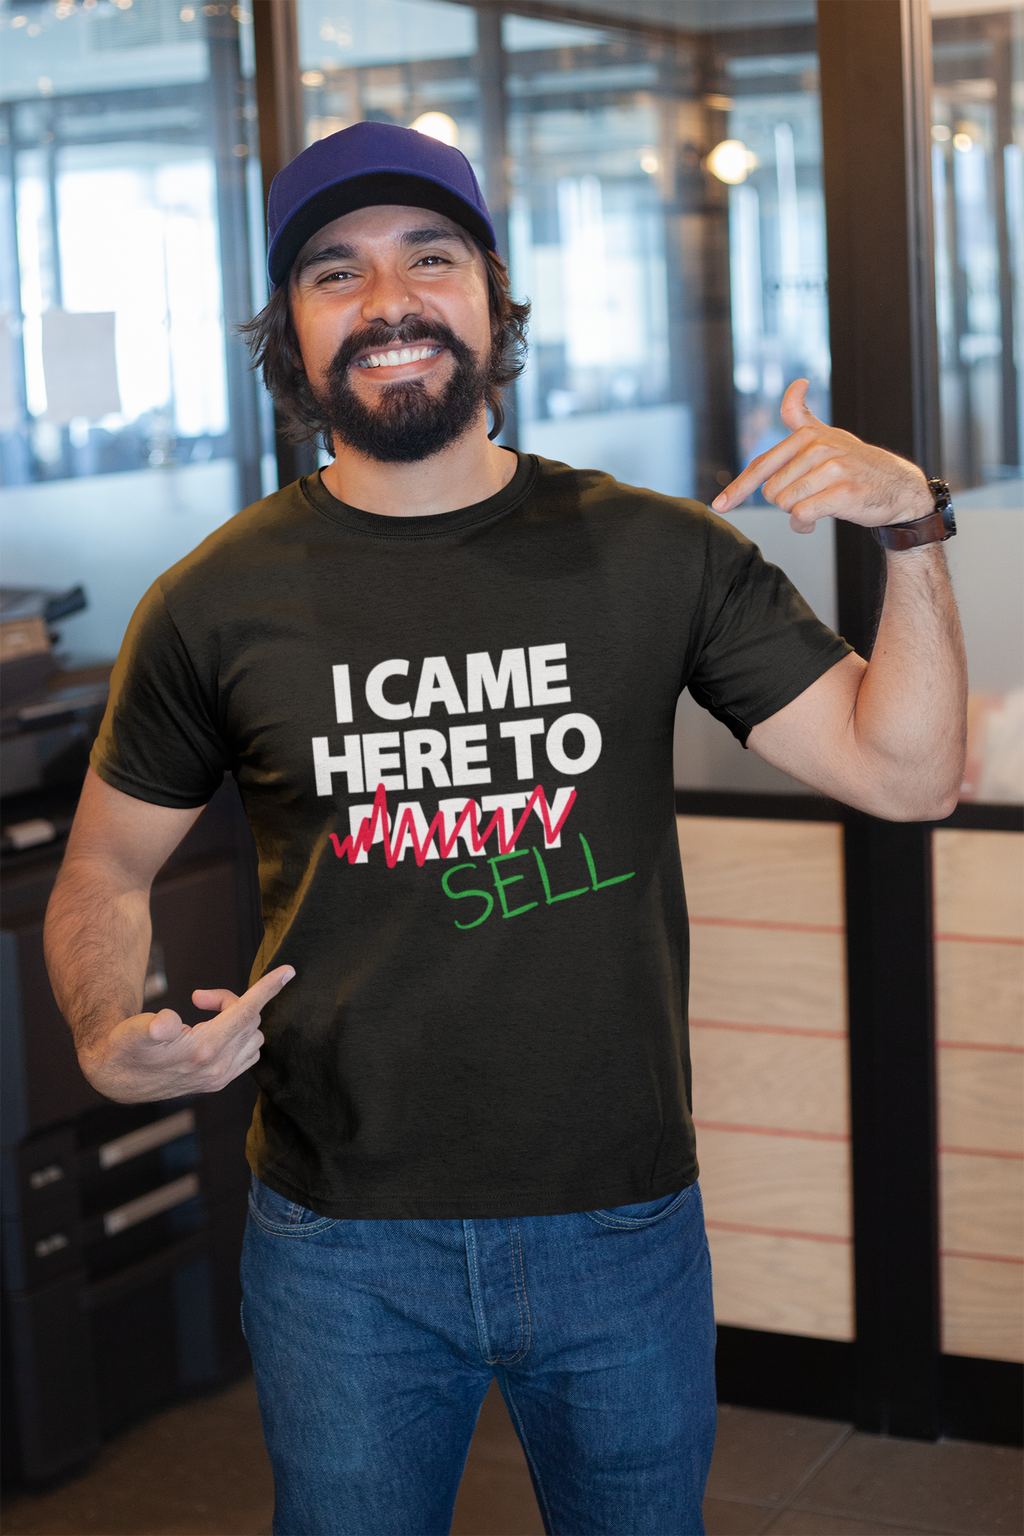 i came here to sell - shirt